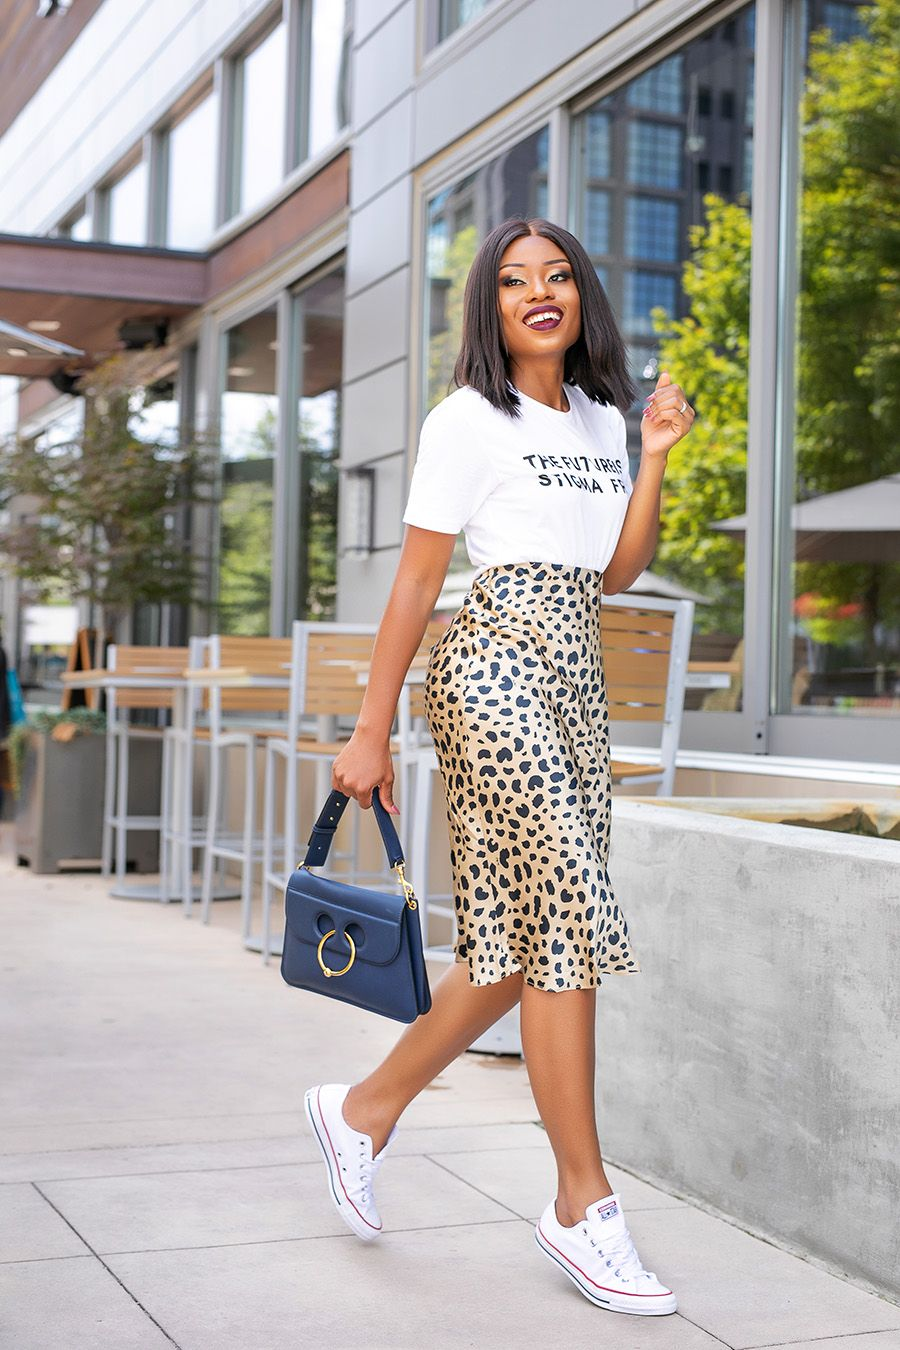 88ad0f420025  Styletips on how to style  LeopardPrint Skirt http   www.jadore